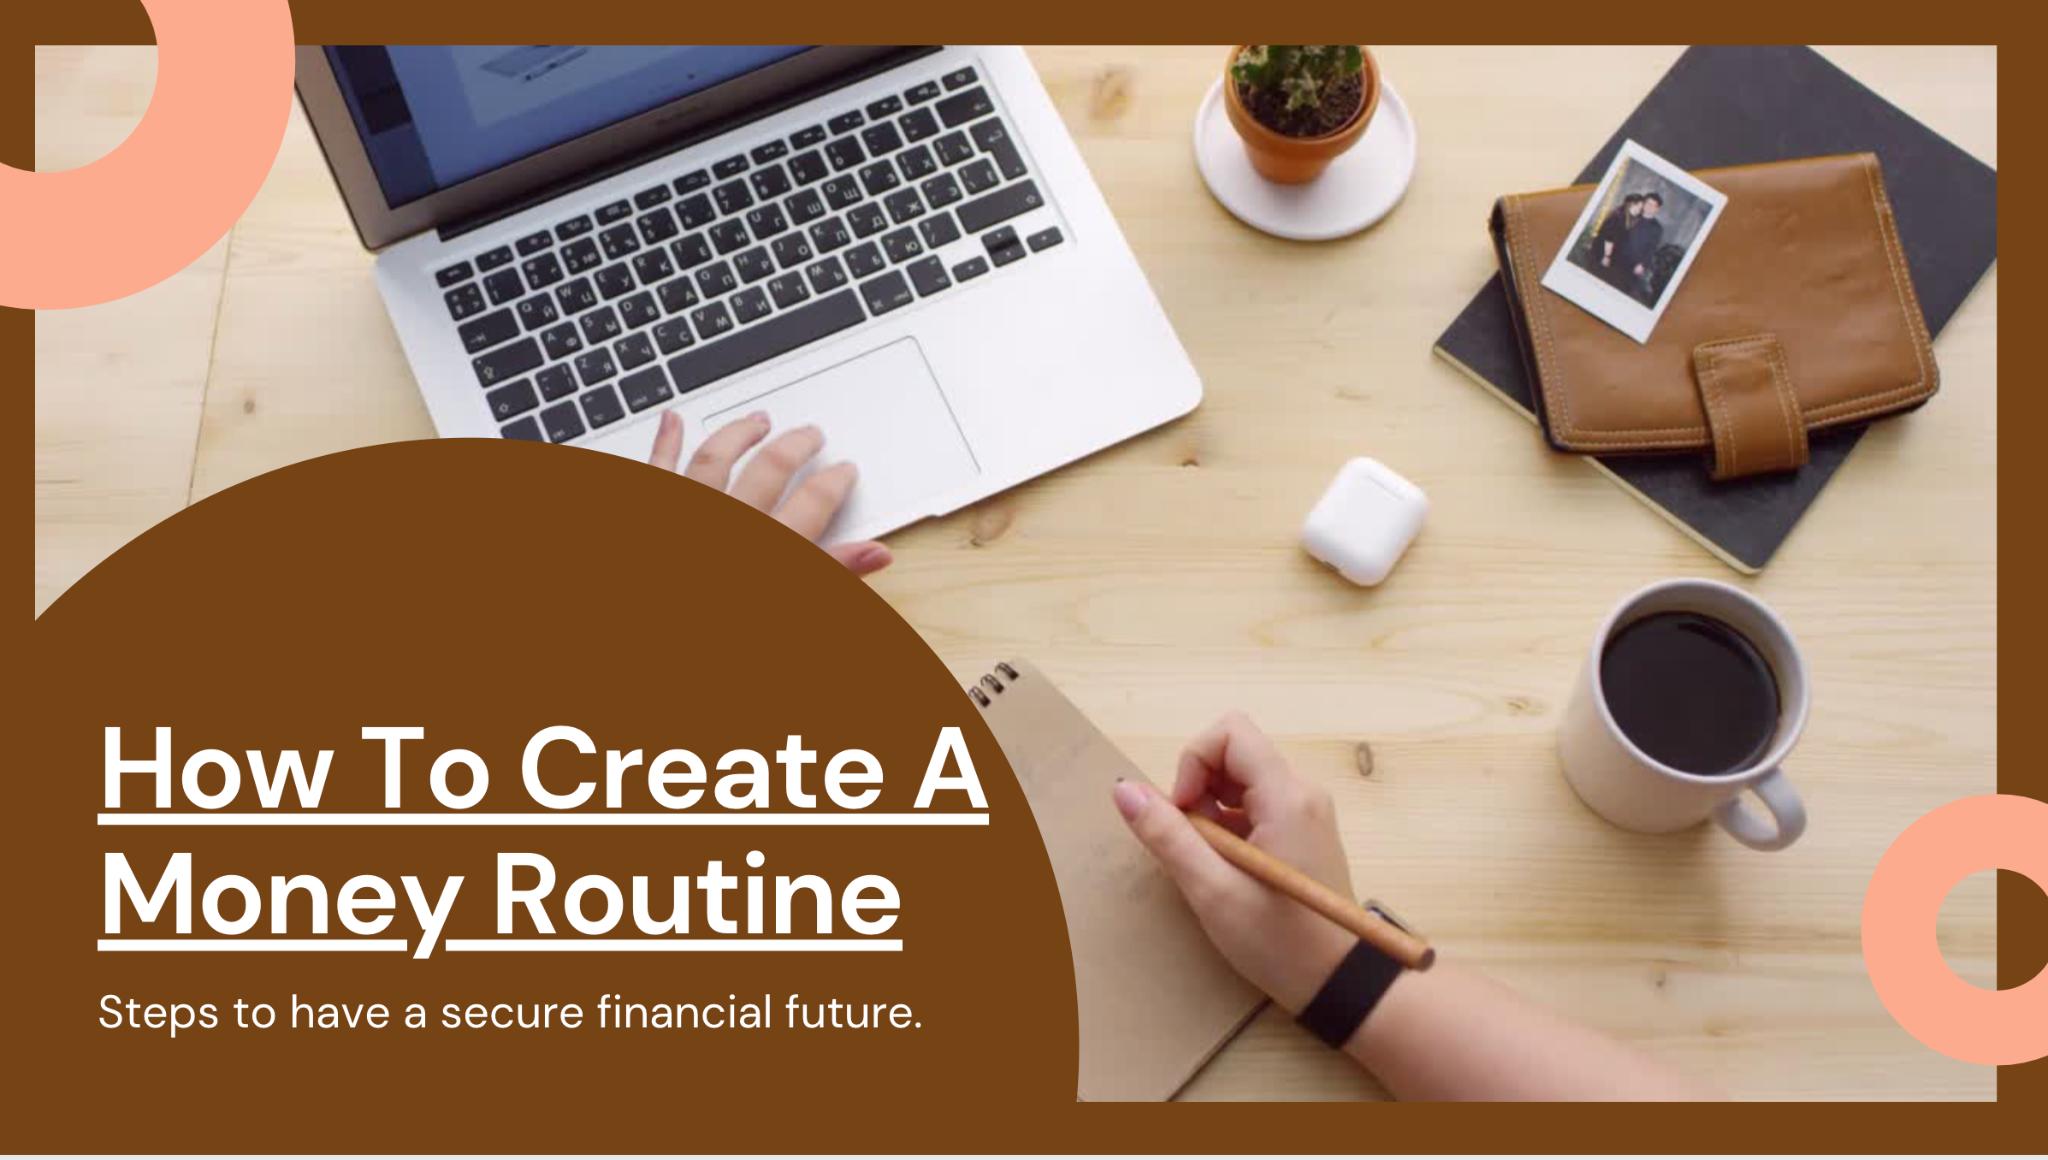 How To Create A Money Routine